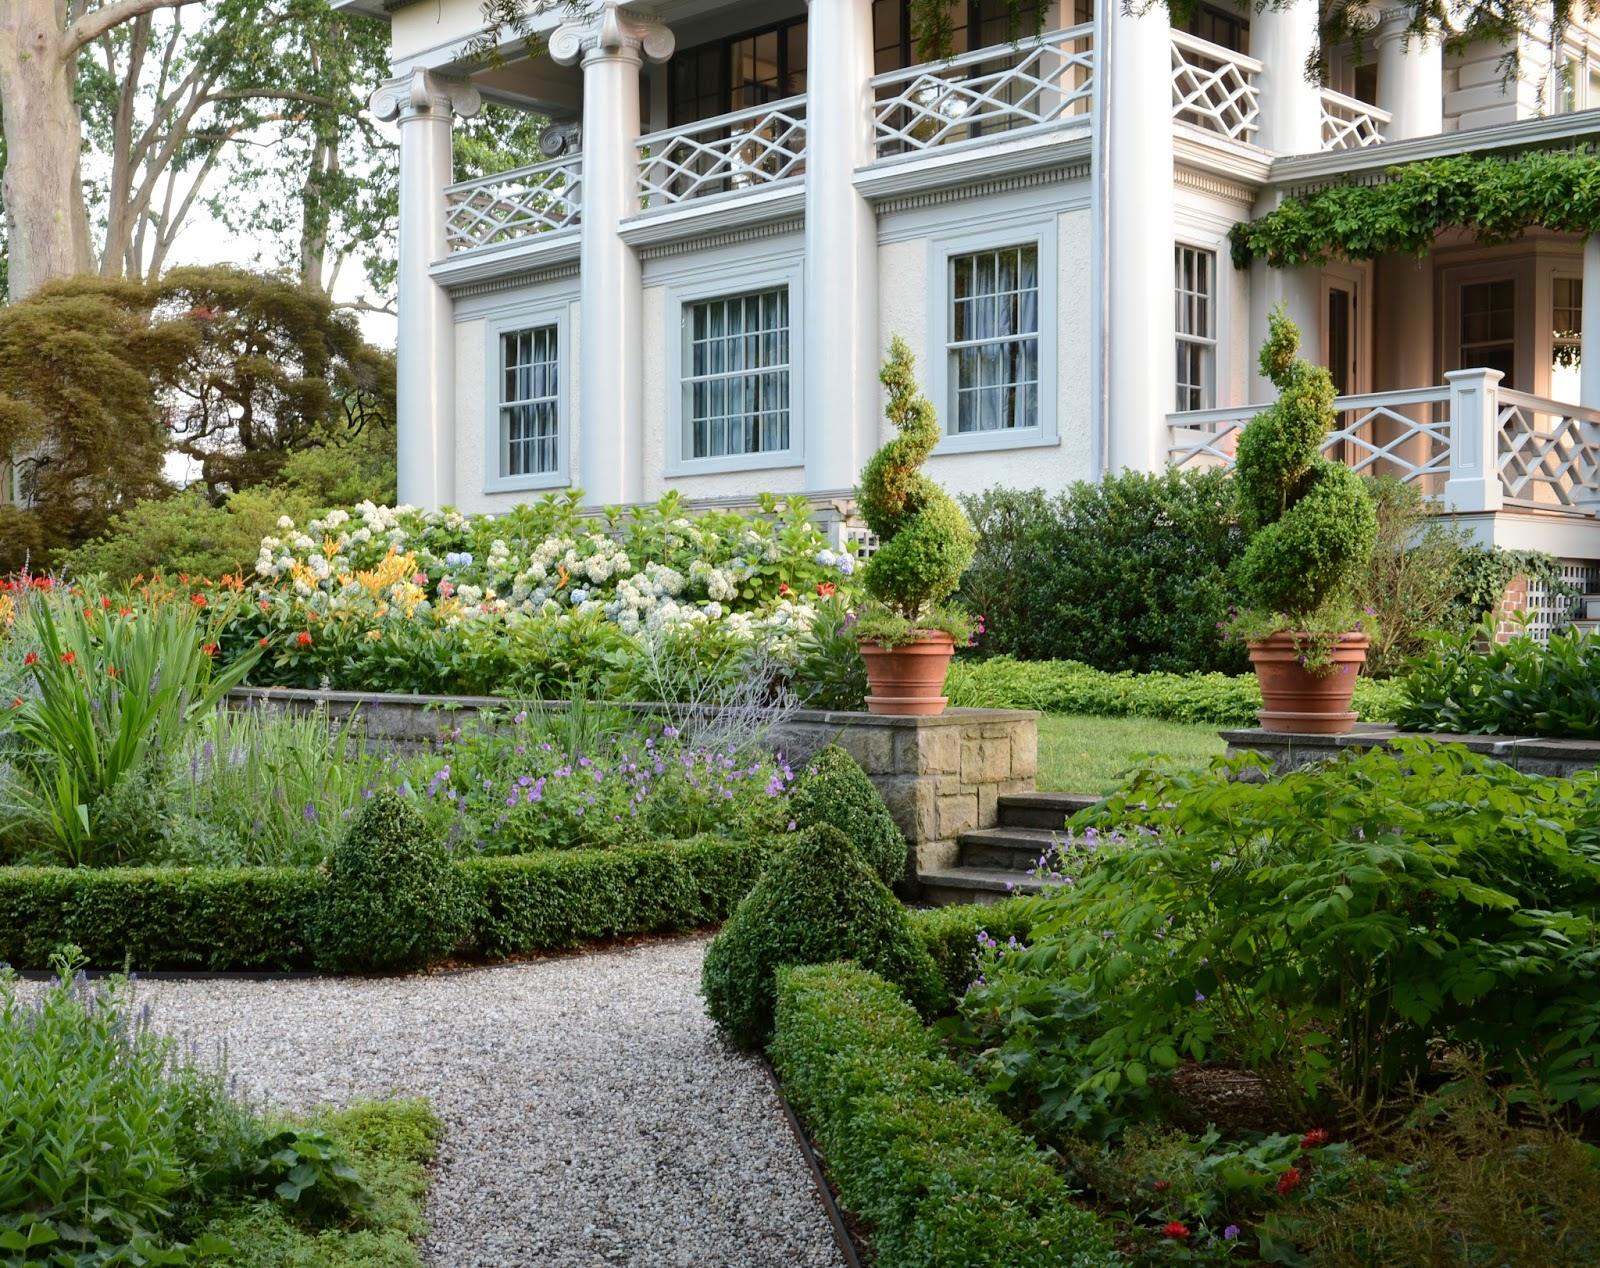 Gardens at First Light - The Glam Pad